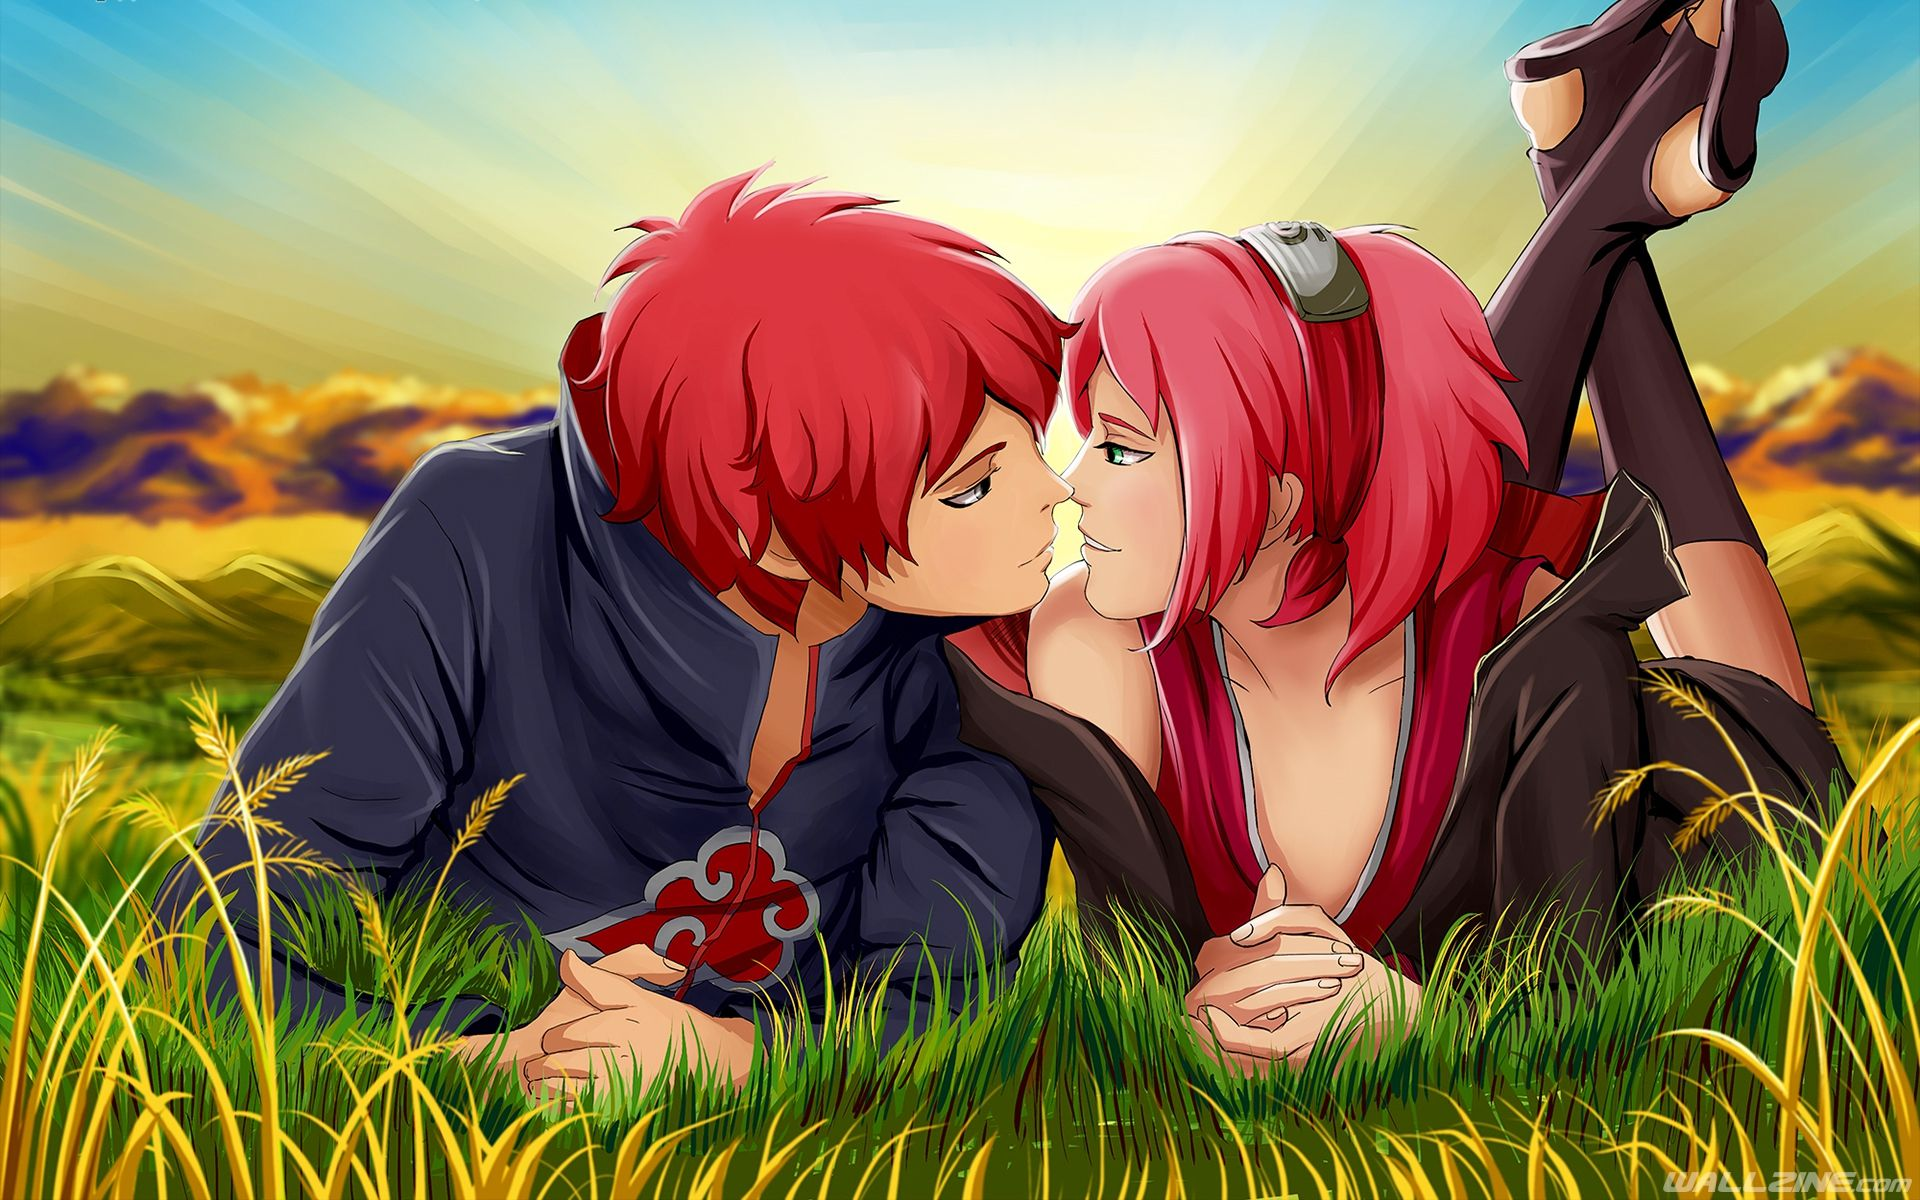 naruto kiss sakura sasori wallpaper | hd desktop wallpapers